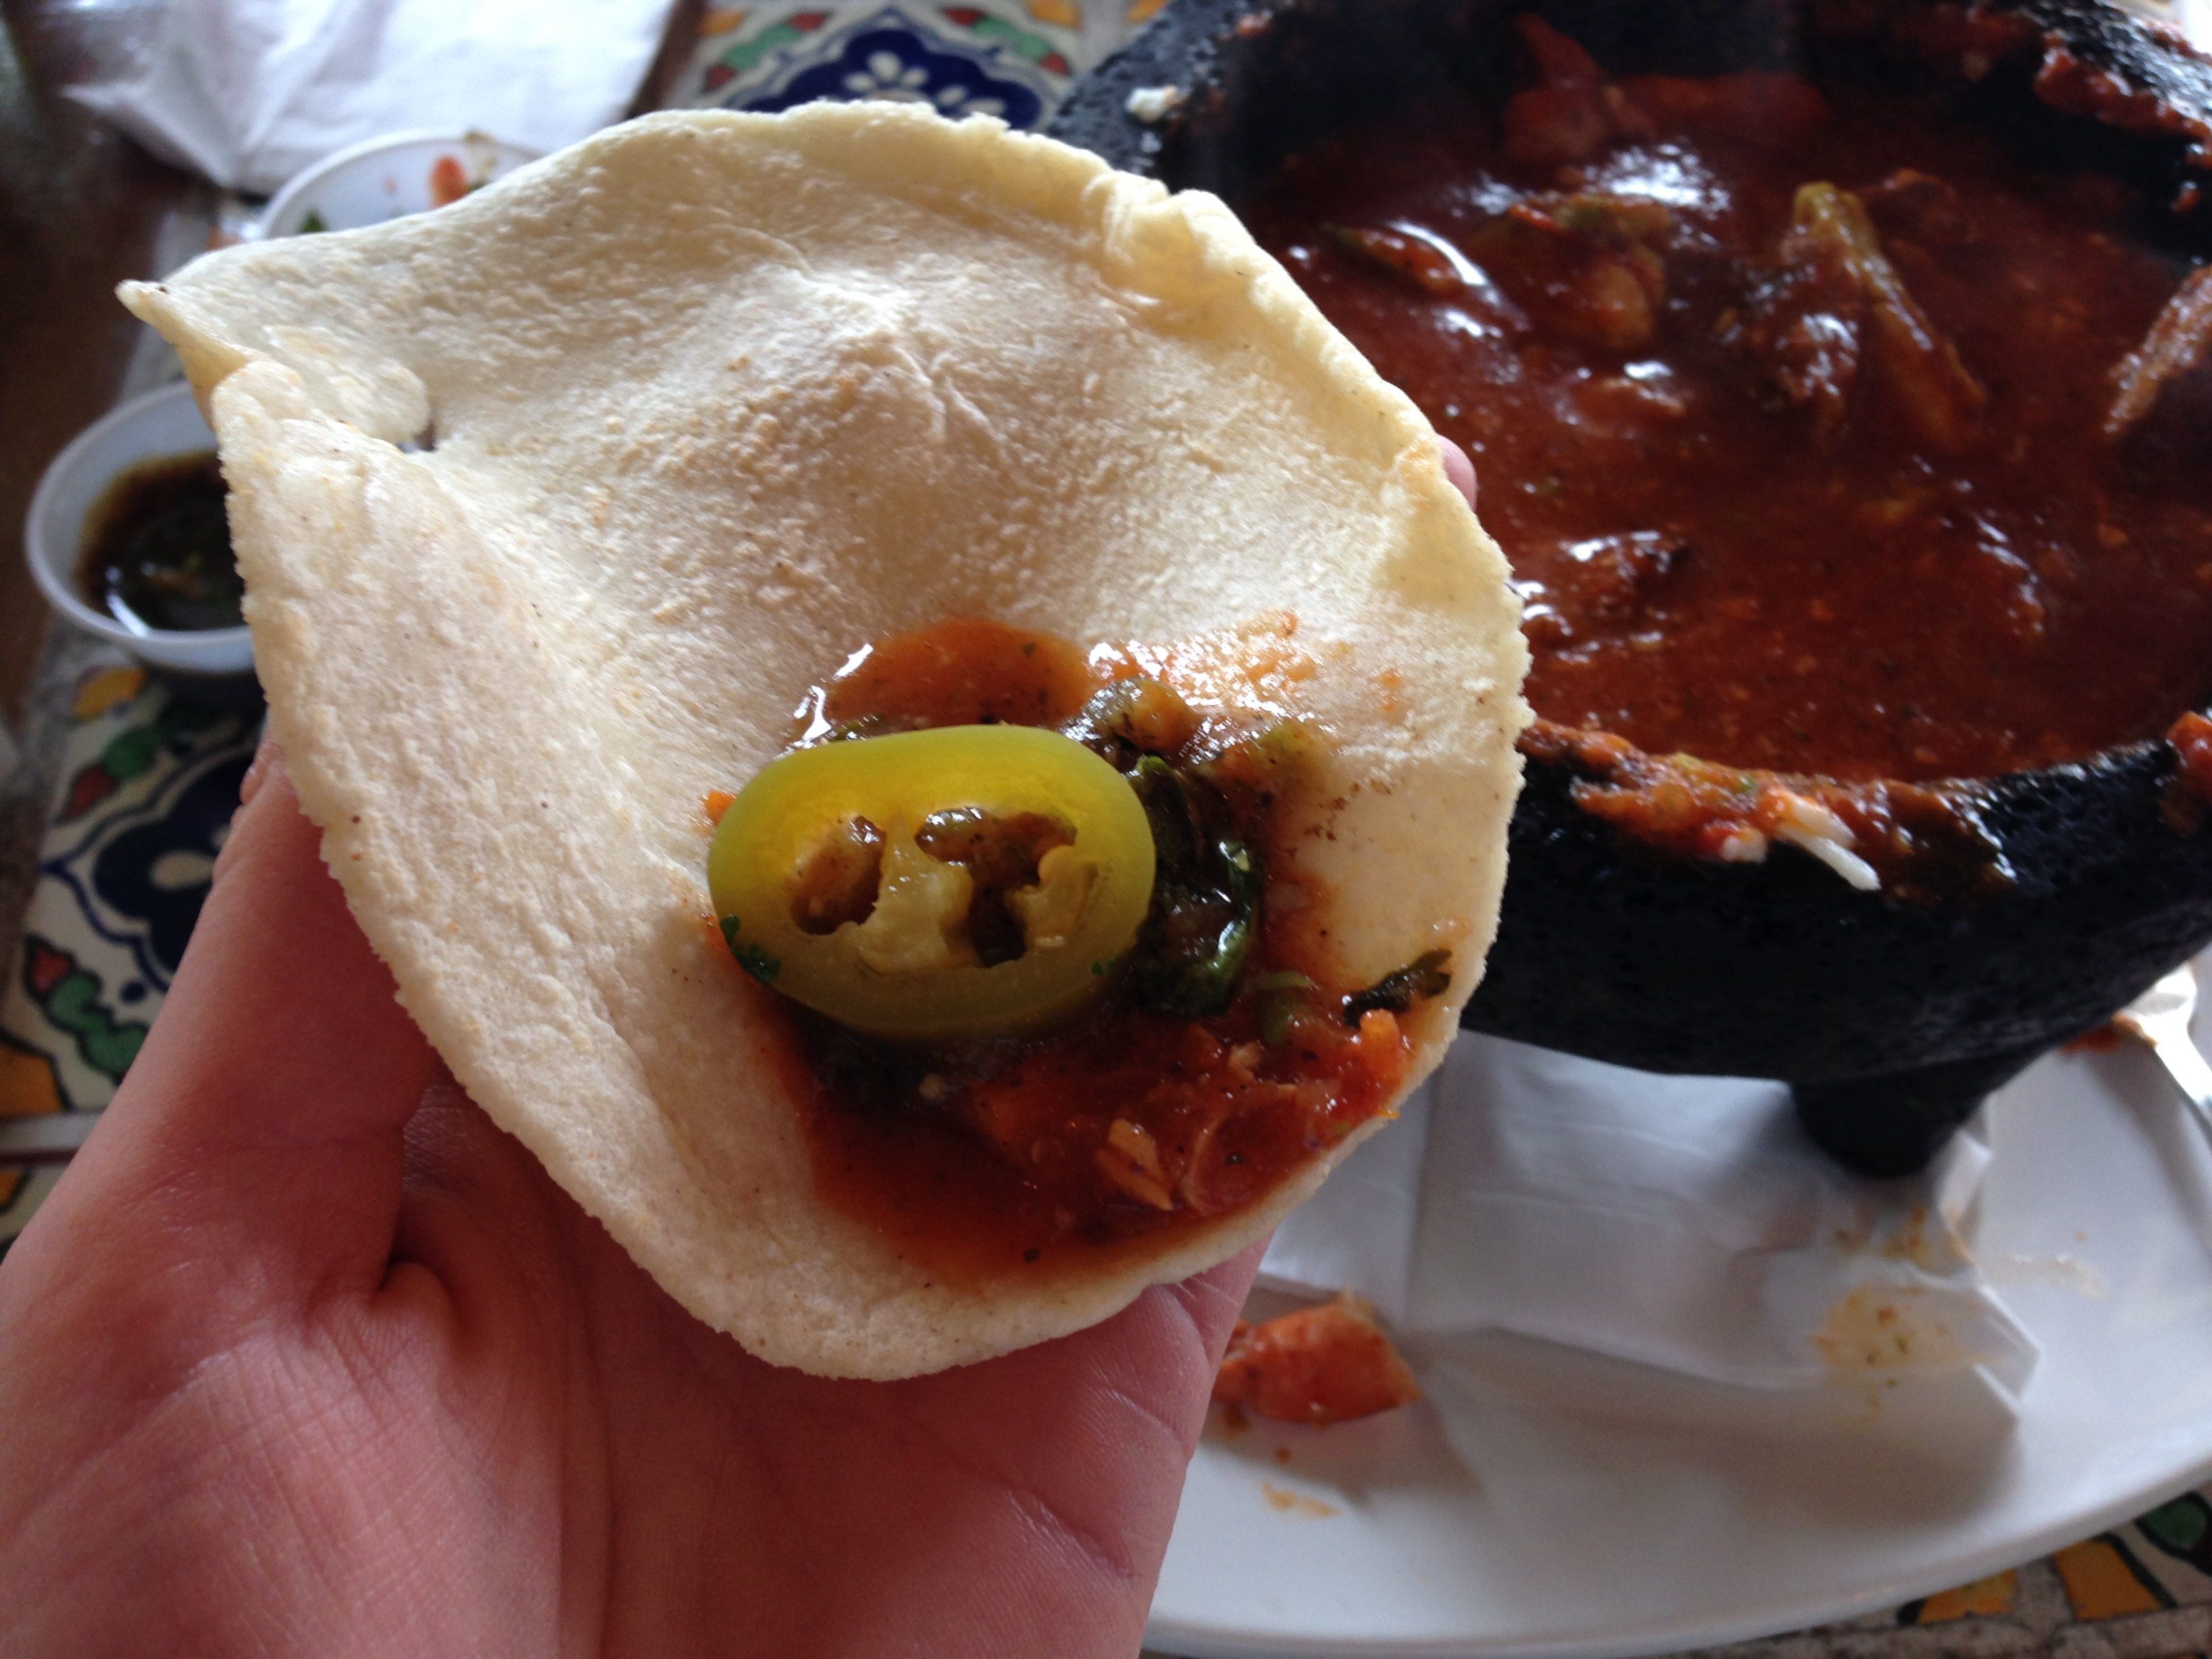 And with bottomless fresh tortillas (which also helped cool down the habañero burn)